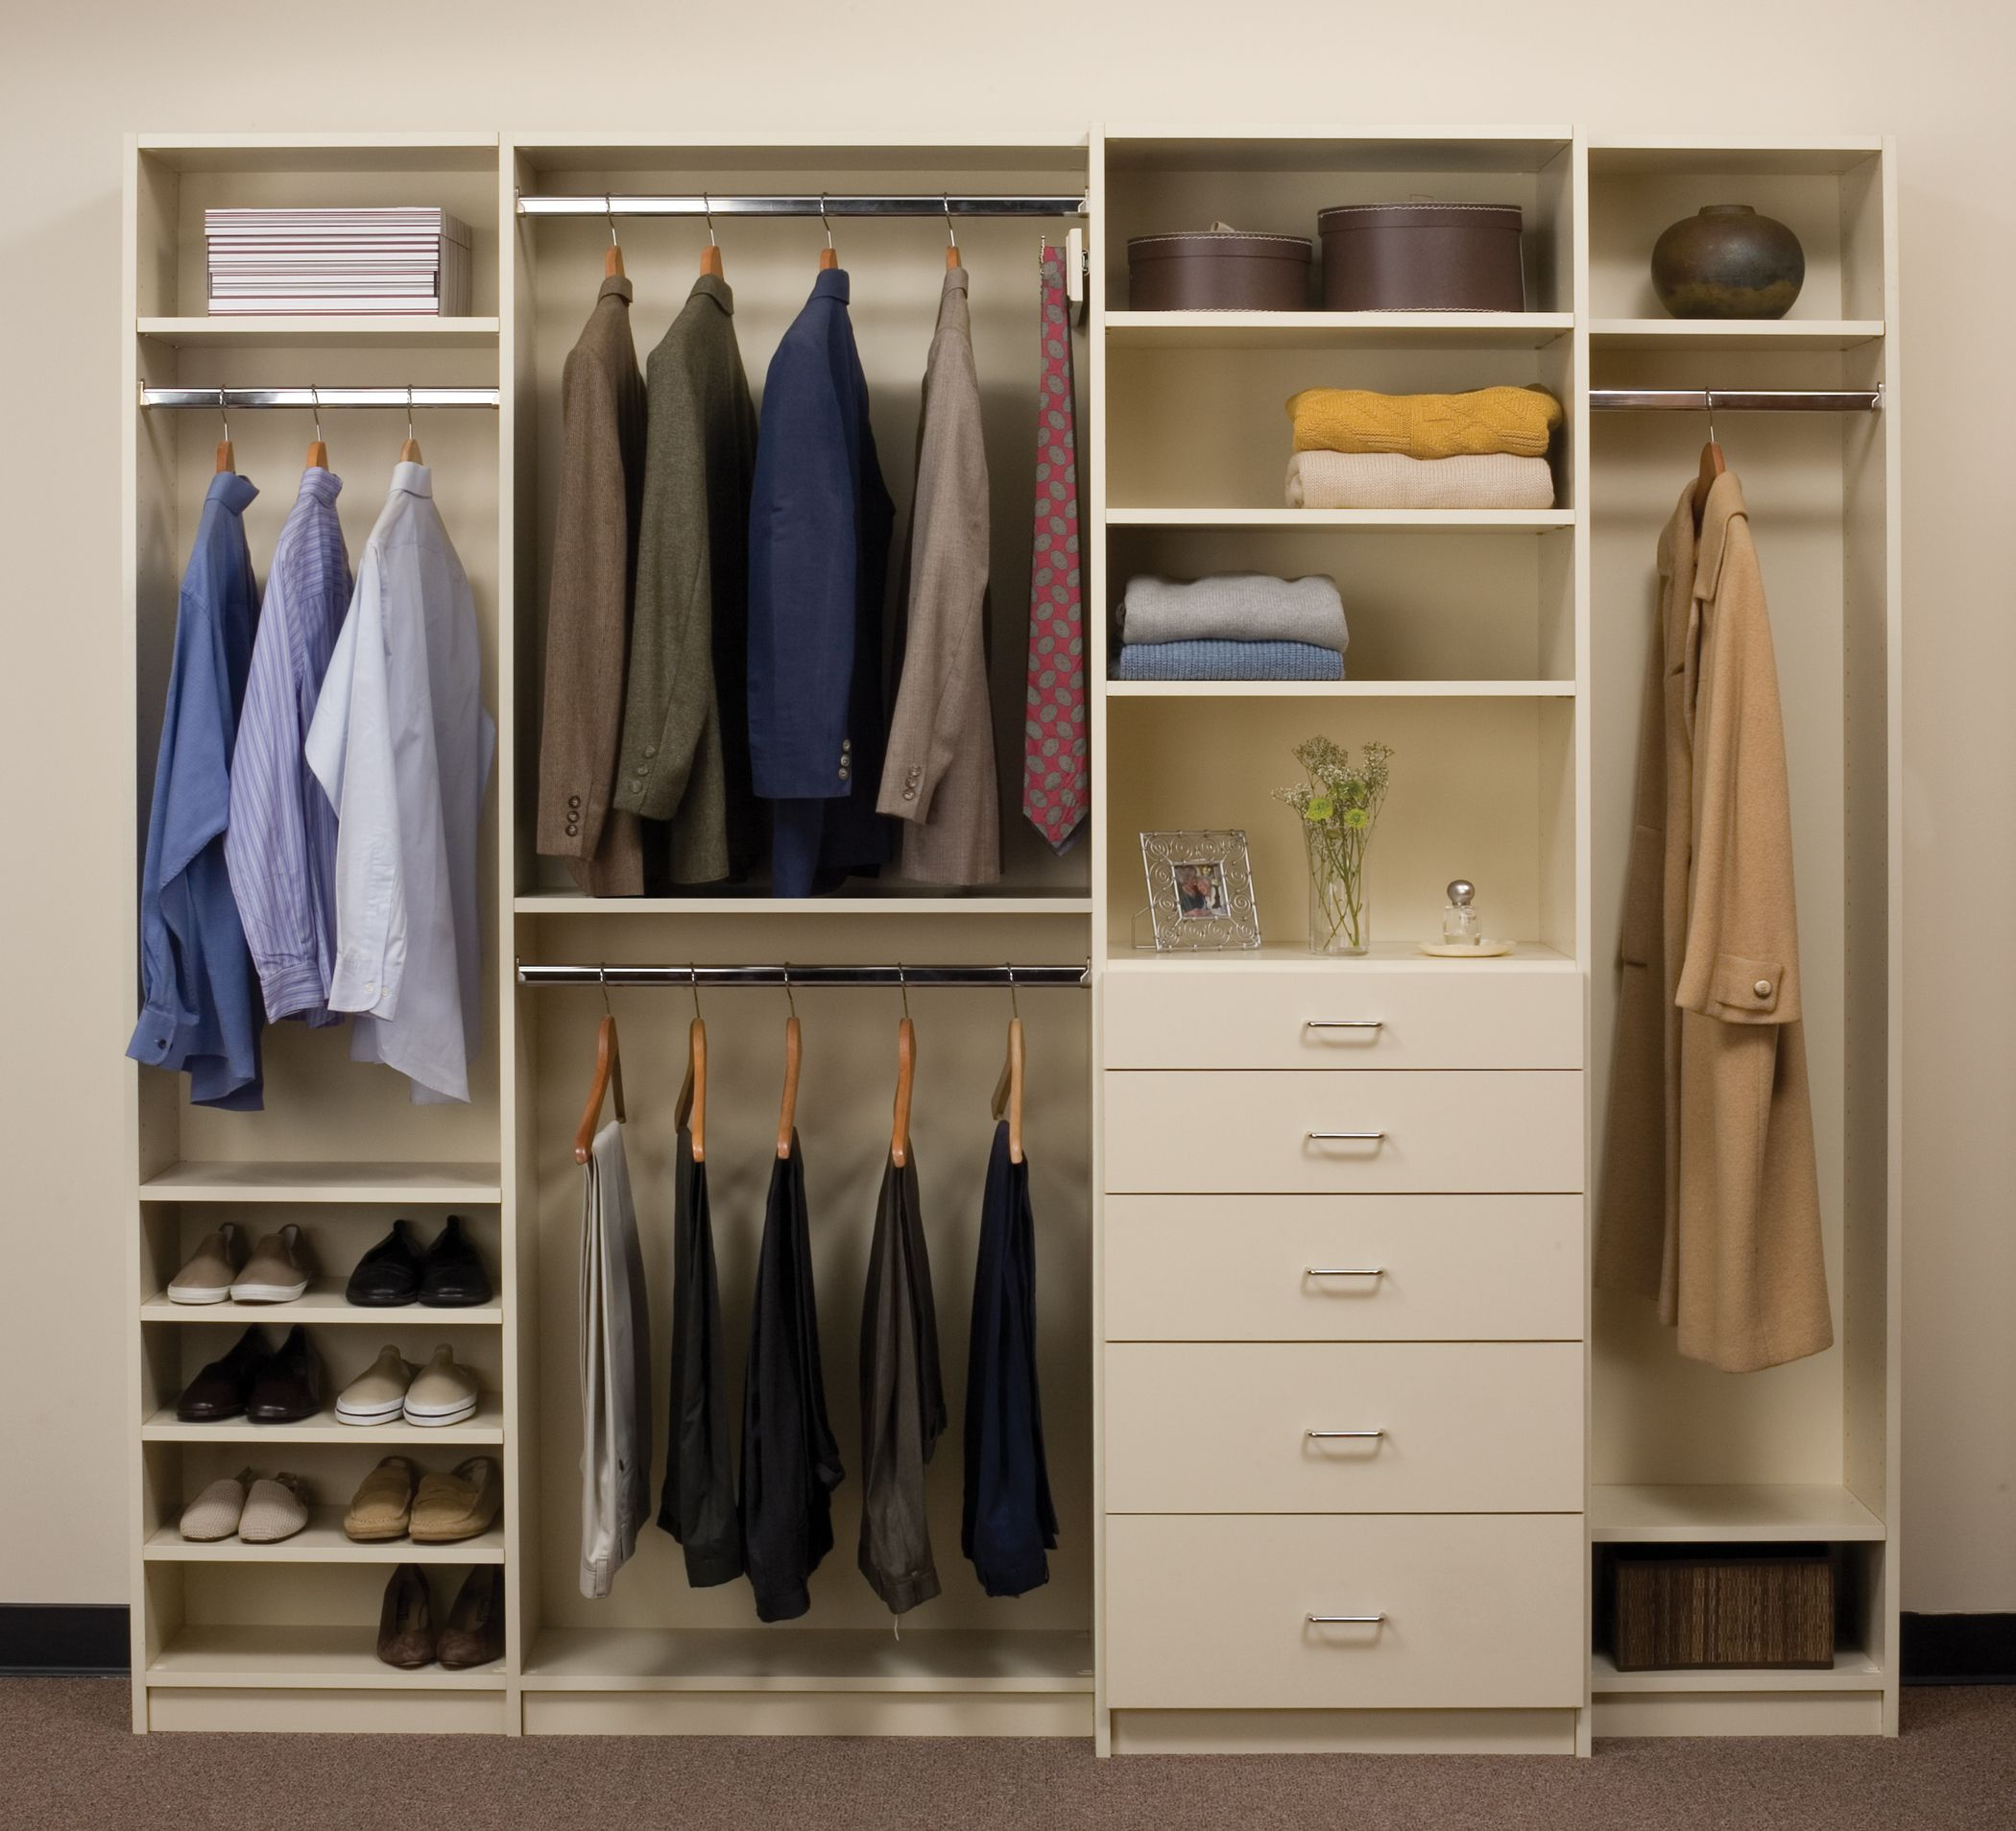 The Everyday Reach In Closet System Includes Drawers Shelves